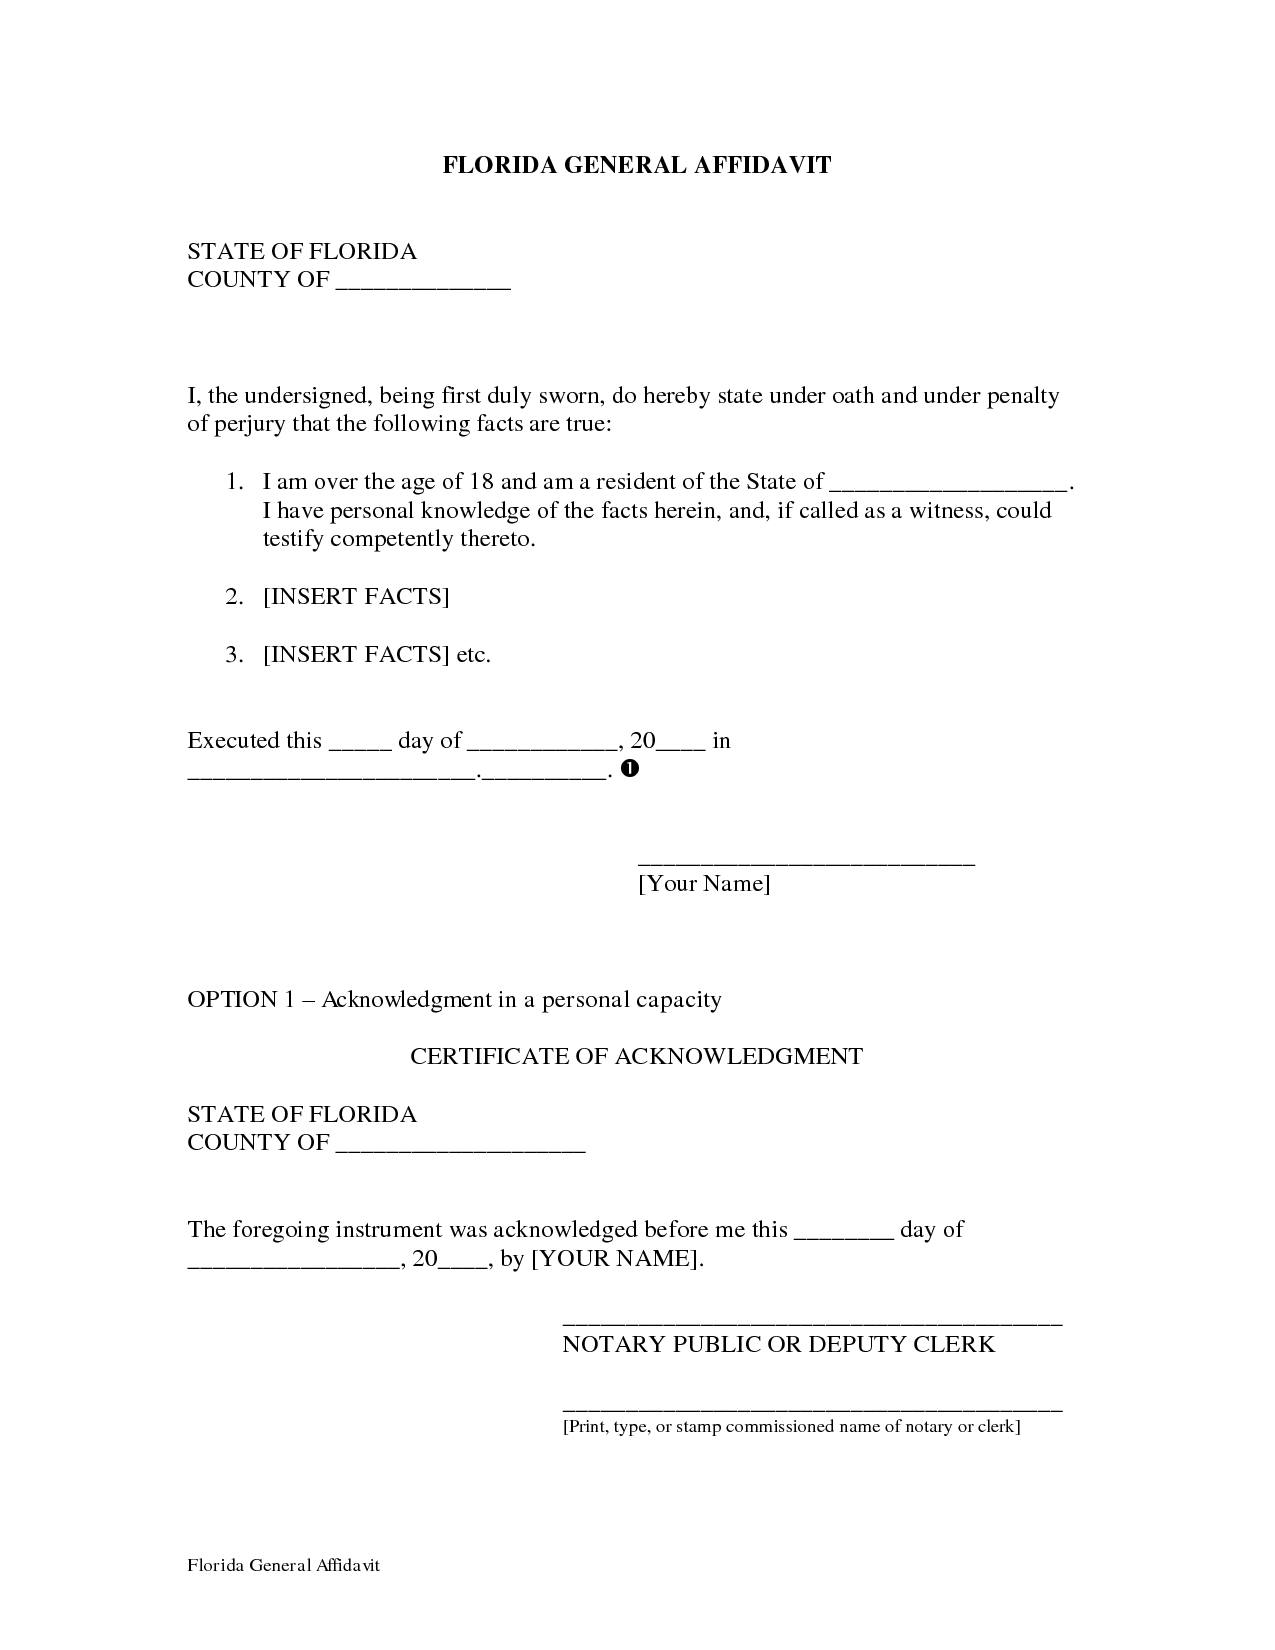 Affidavit Samples Sample Affidavit Letter For Marriage – Affidavit Forms Free